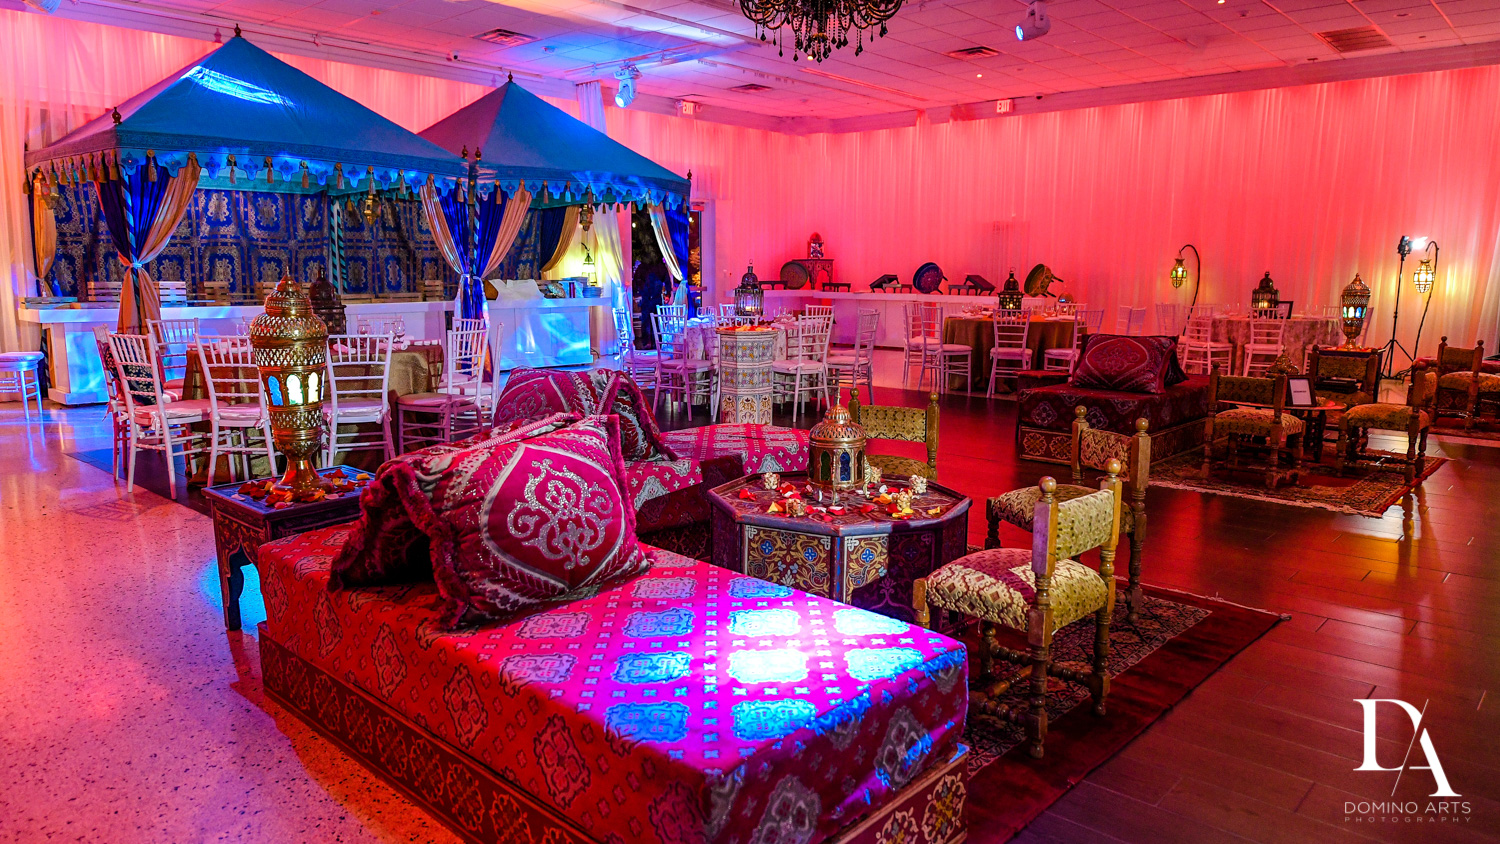 ethnic decor at Traditional Henna Party Photography at Lavan South Florida by Domino Arts